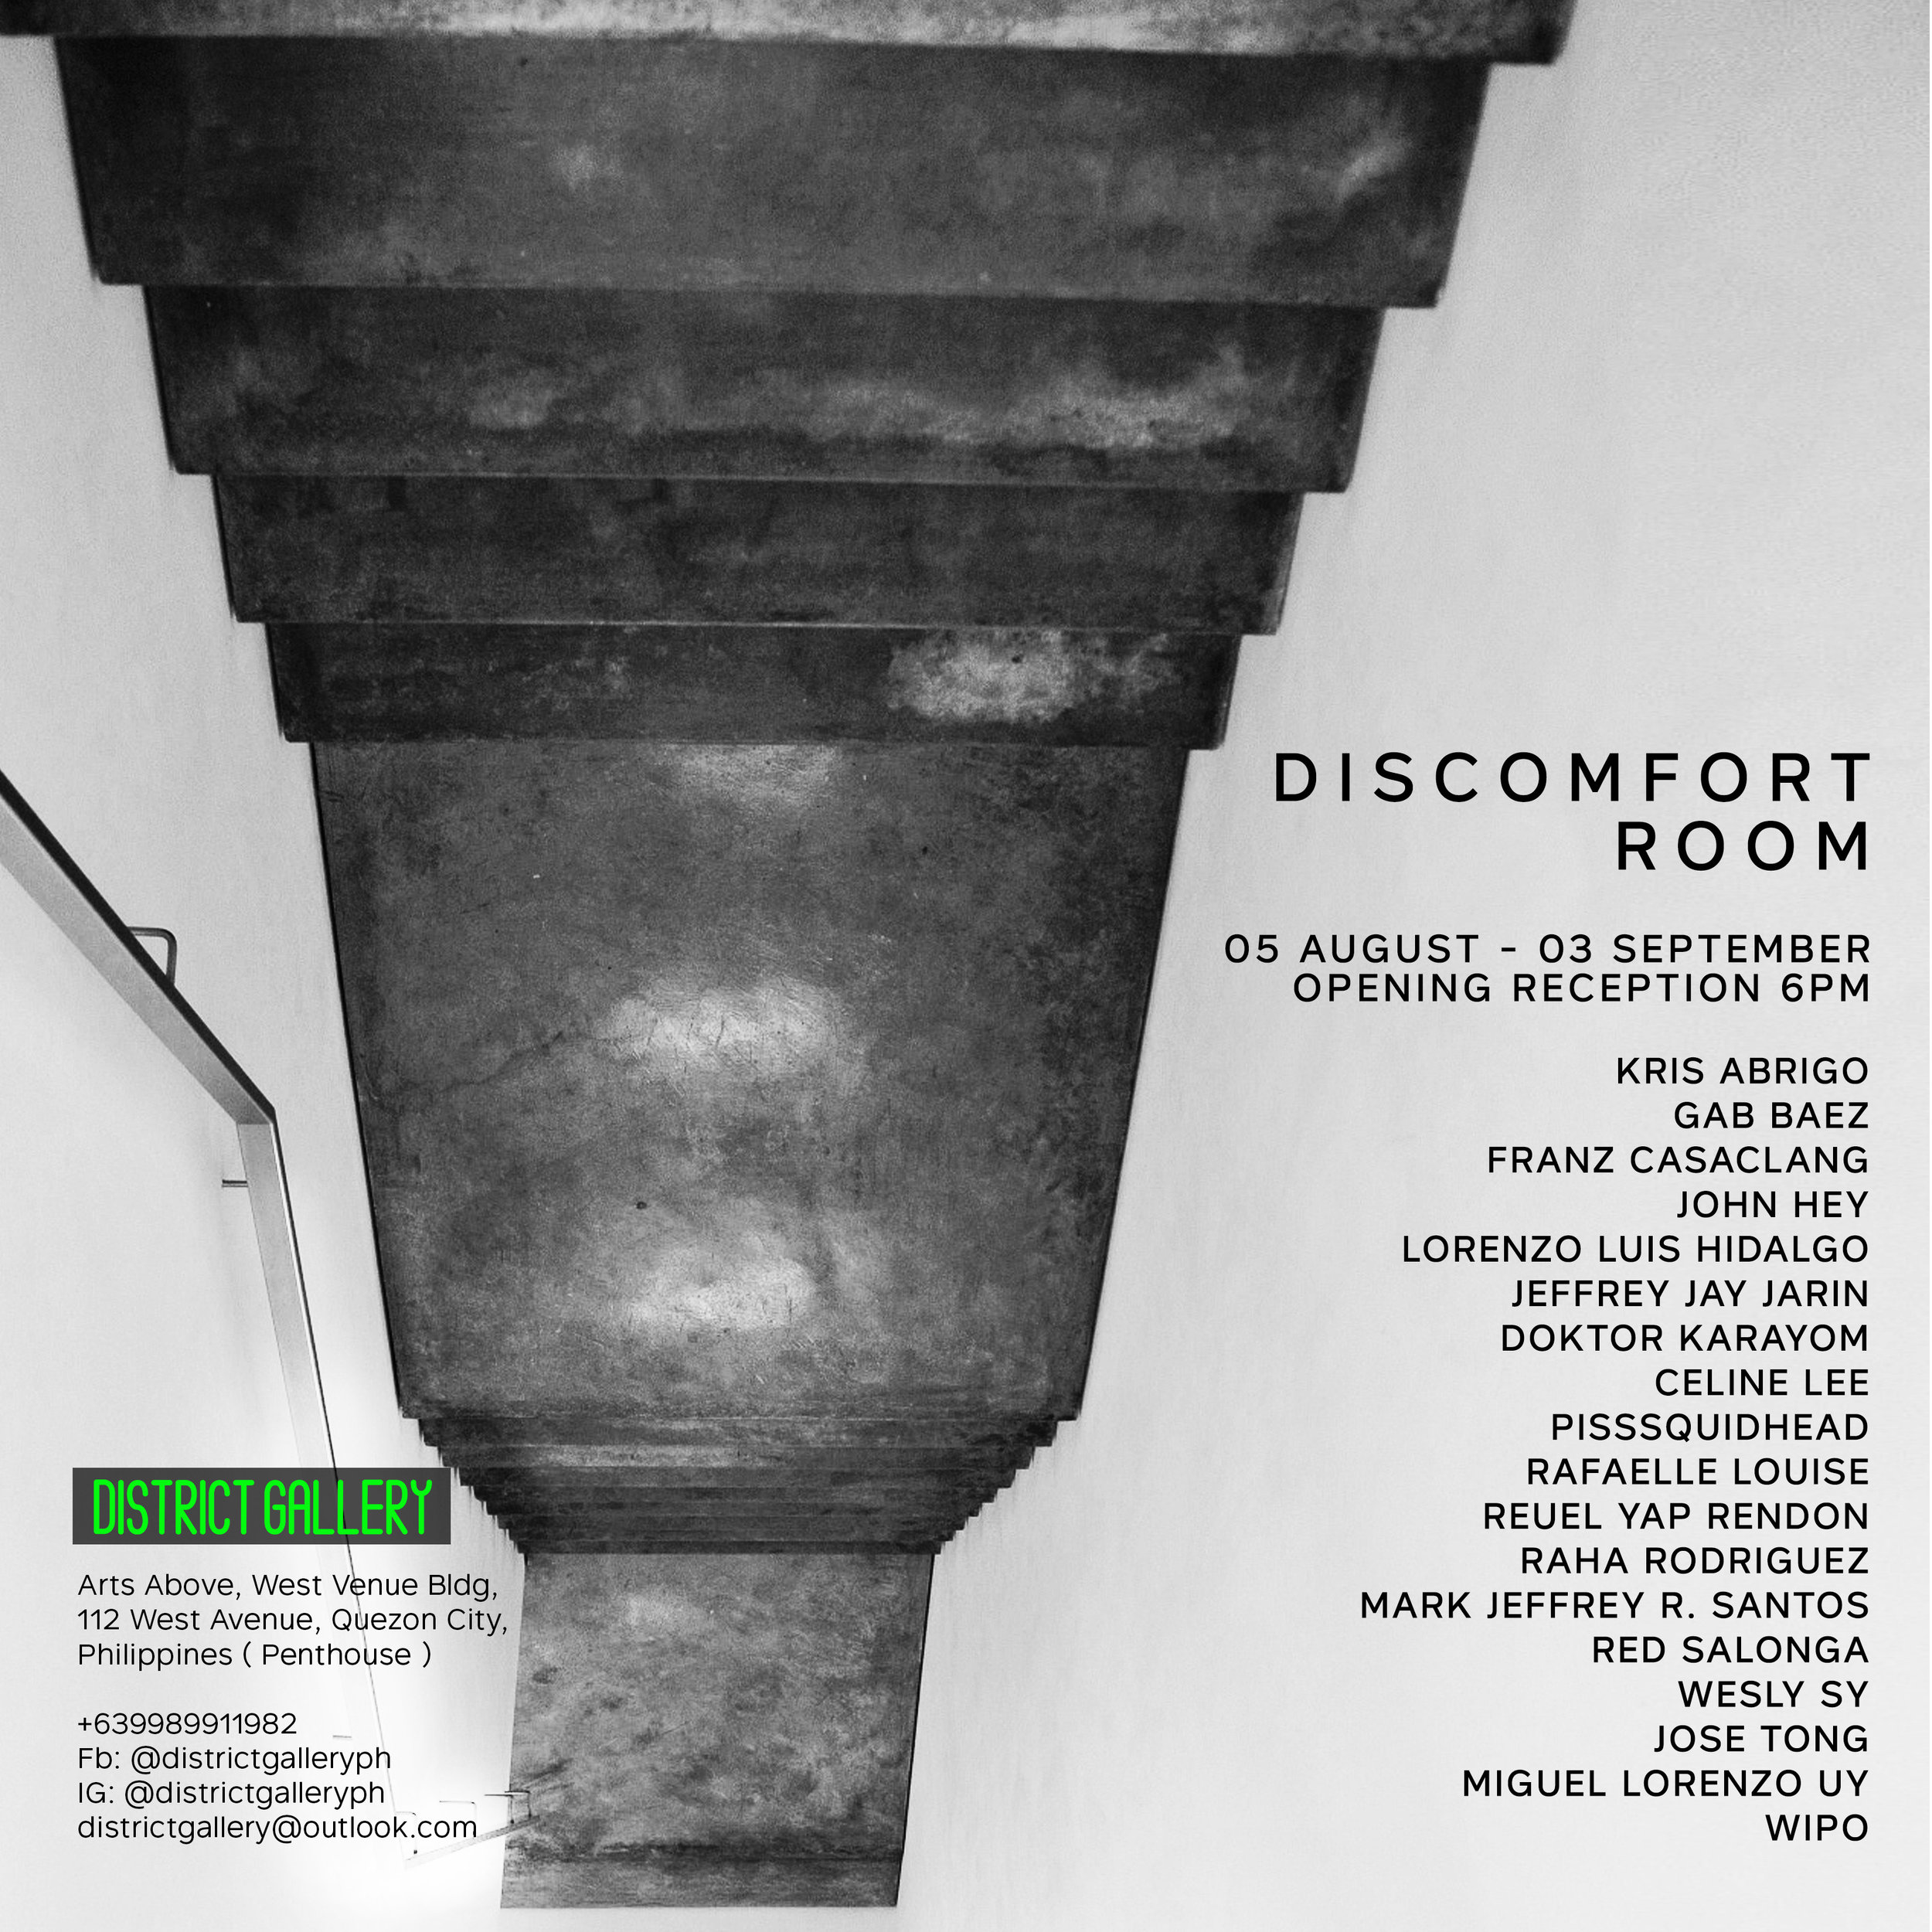 dicomfort-room_ig1.jpg